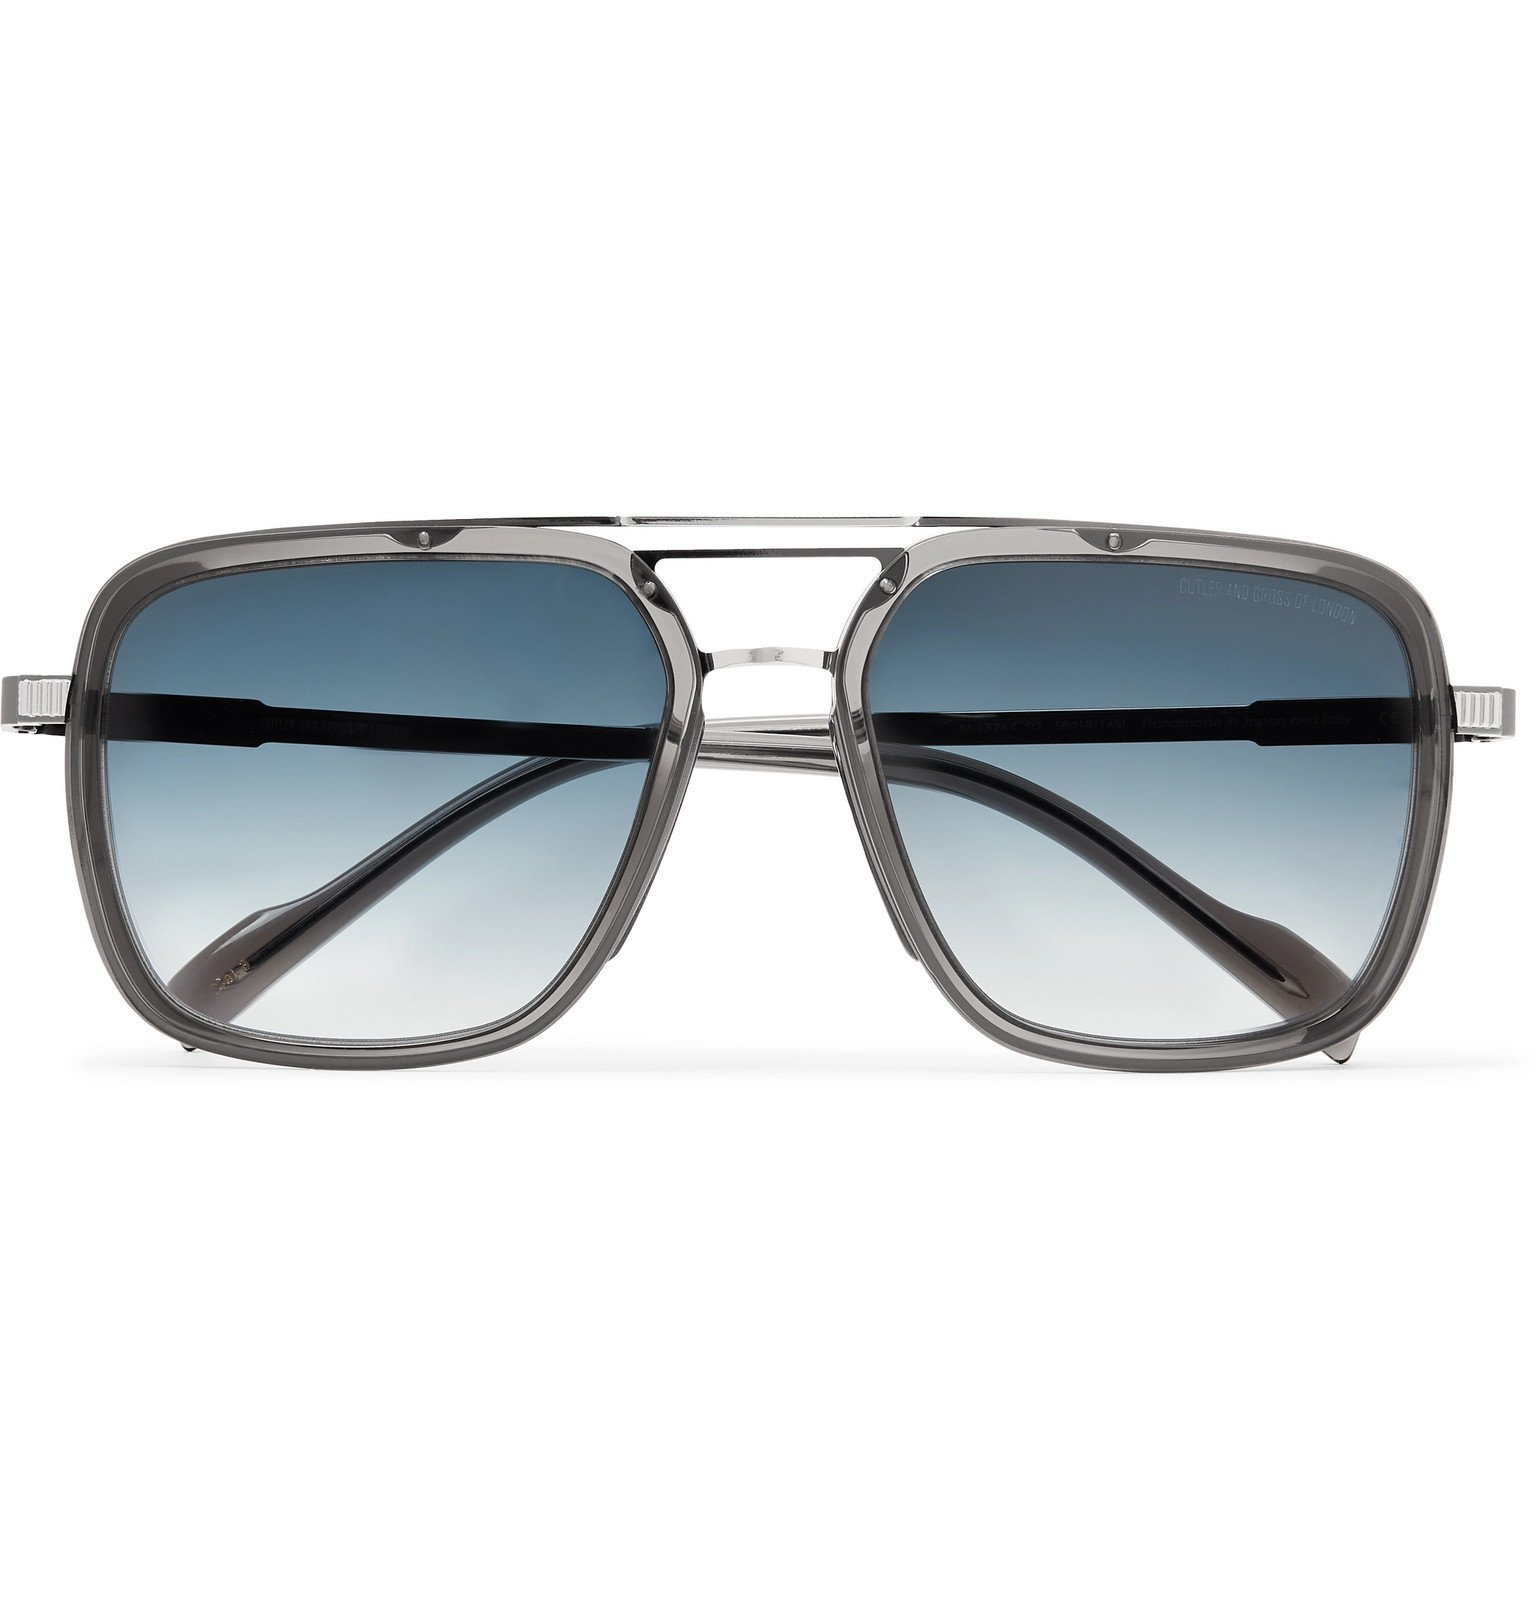 Photo: Cutler and Gross - Aviator-Style Acetate and Gunmetal-Tone Sunglasses - Gray